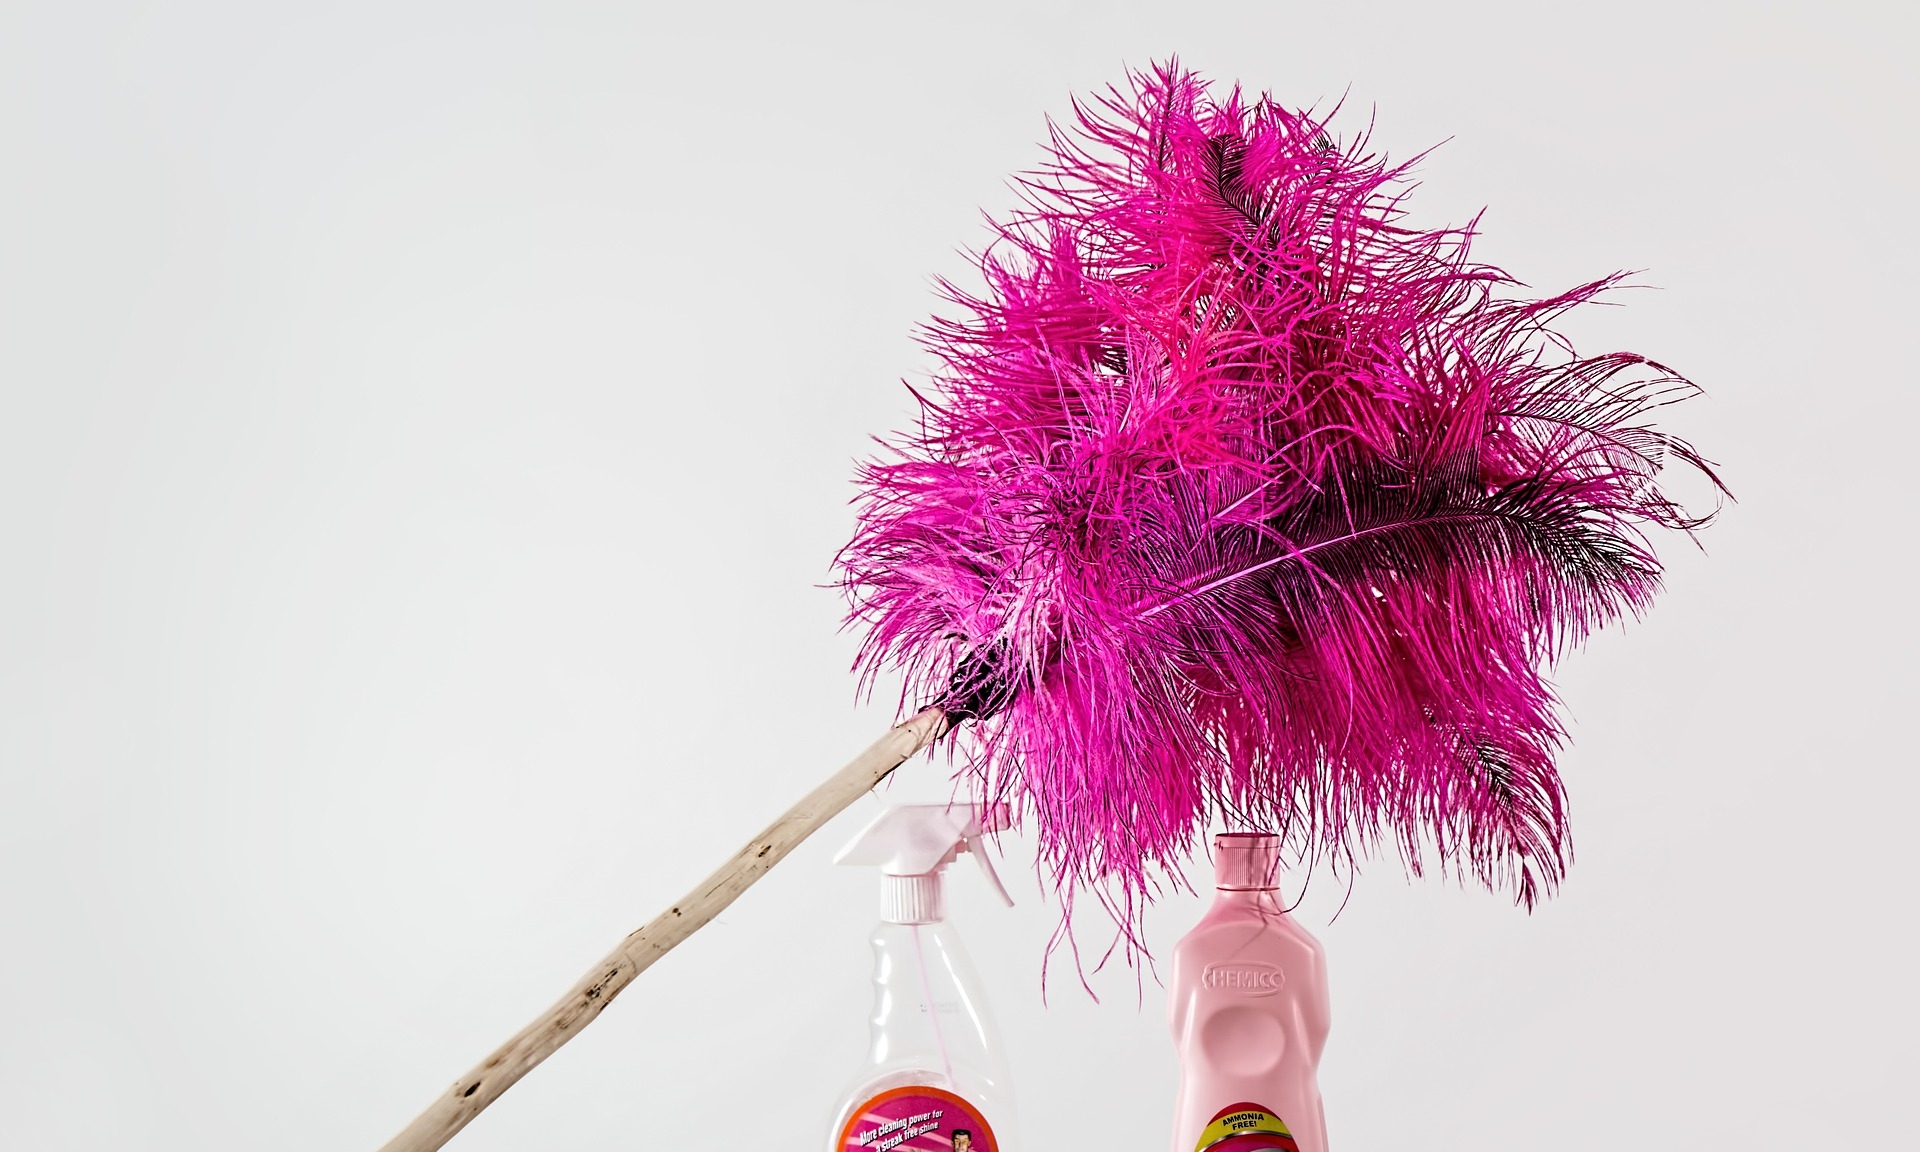 feather-duster-709124_1920.jpg